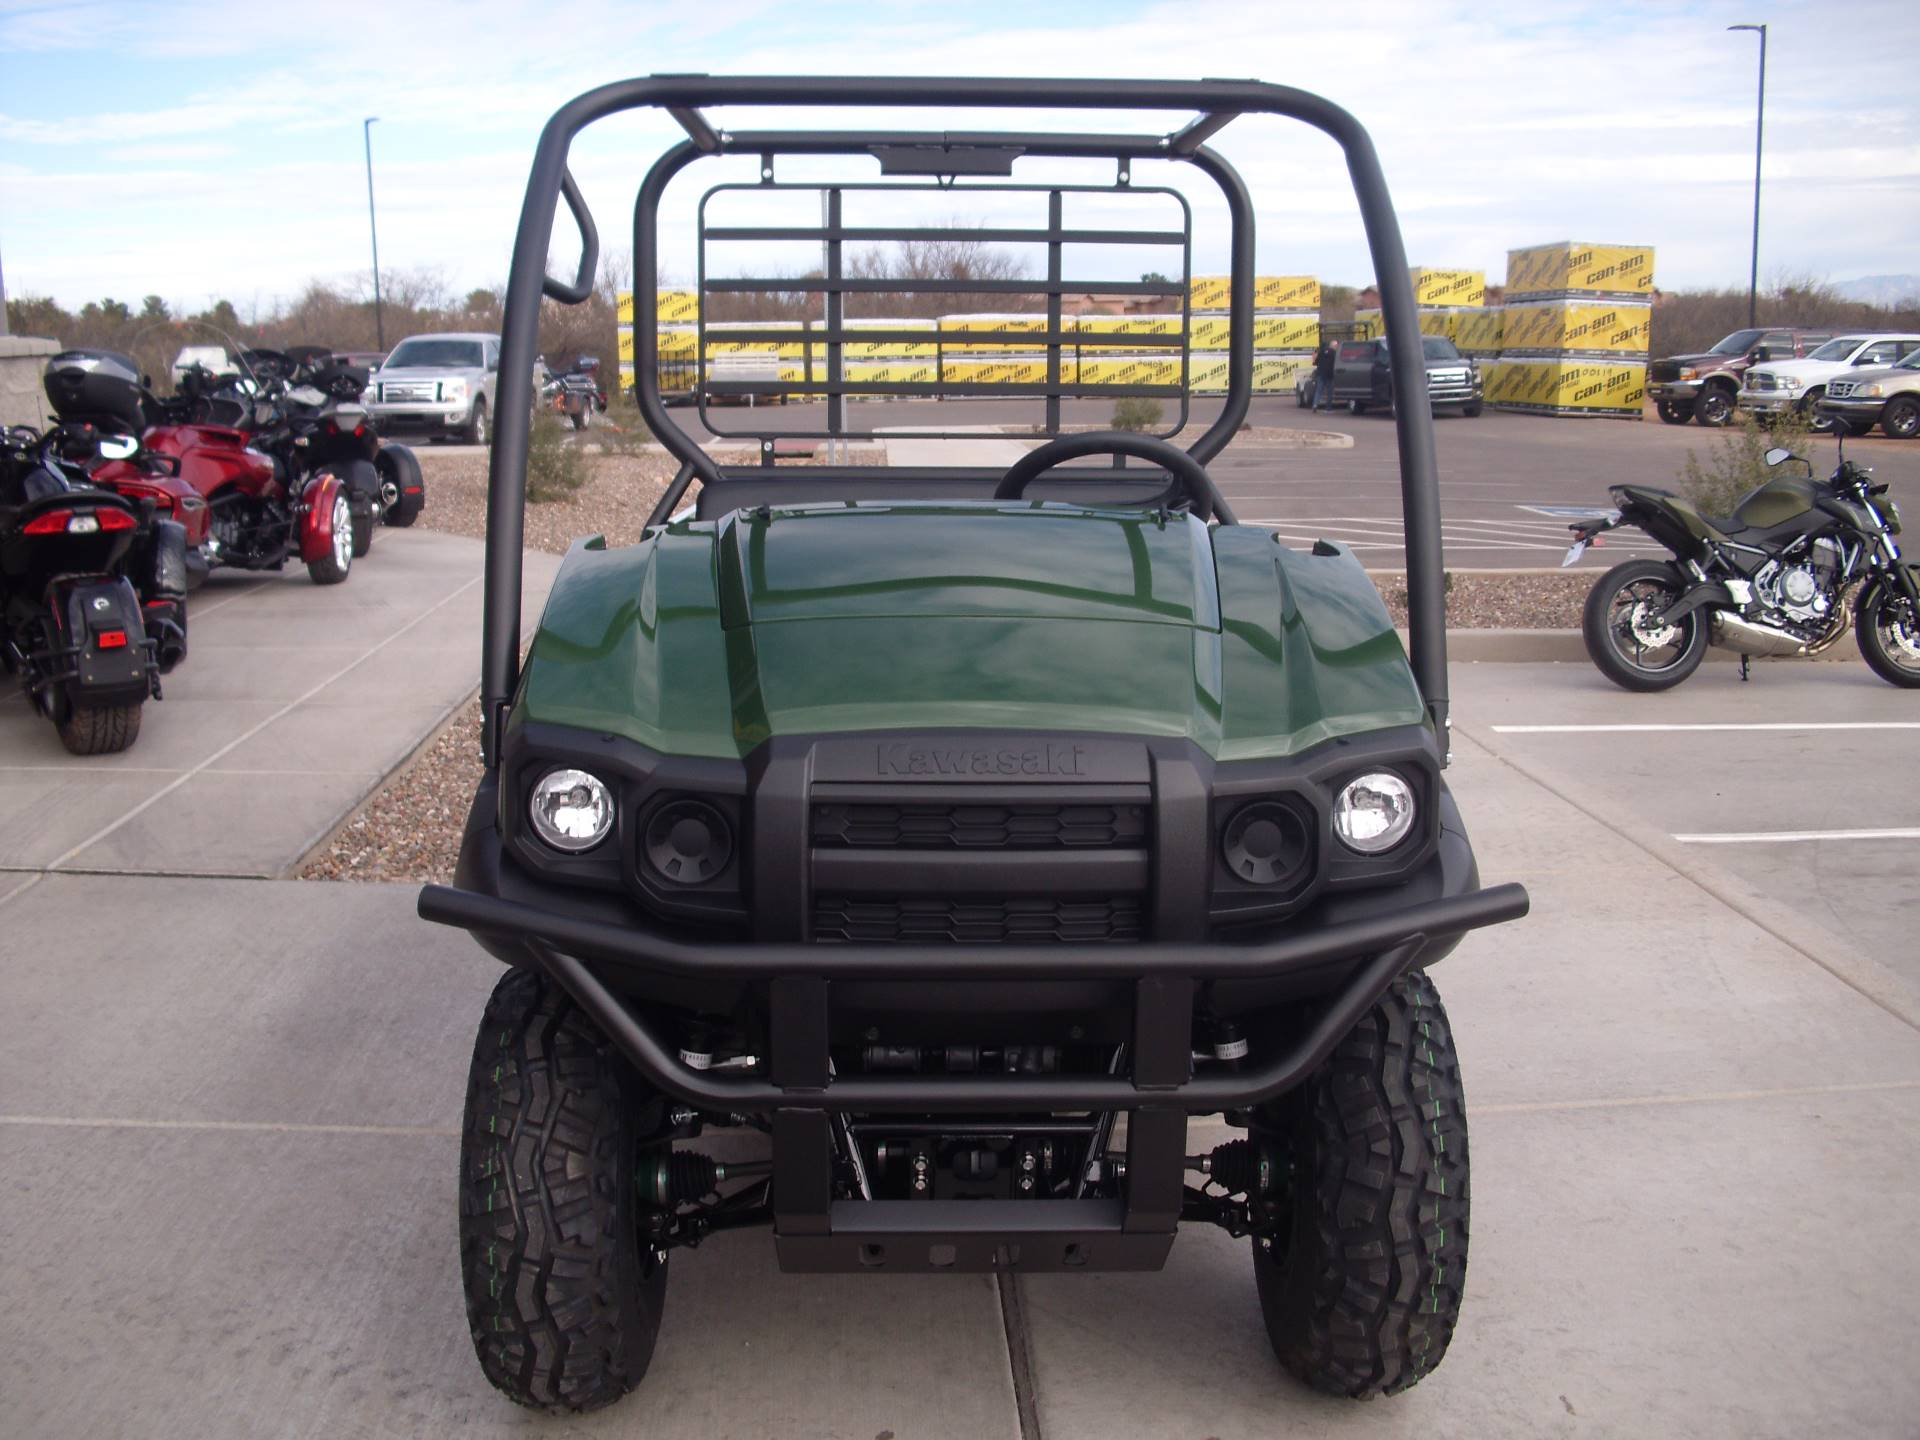 2019 Kawasaki Mule SX 4x4 FI in Sierra Vista, Arizona - Photo 3